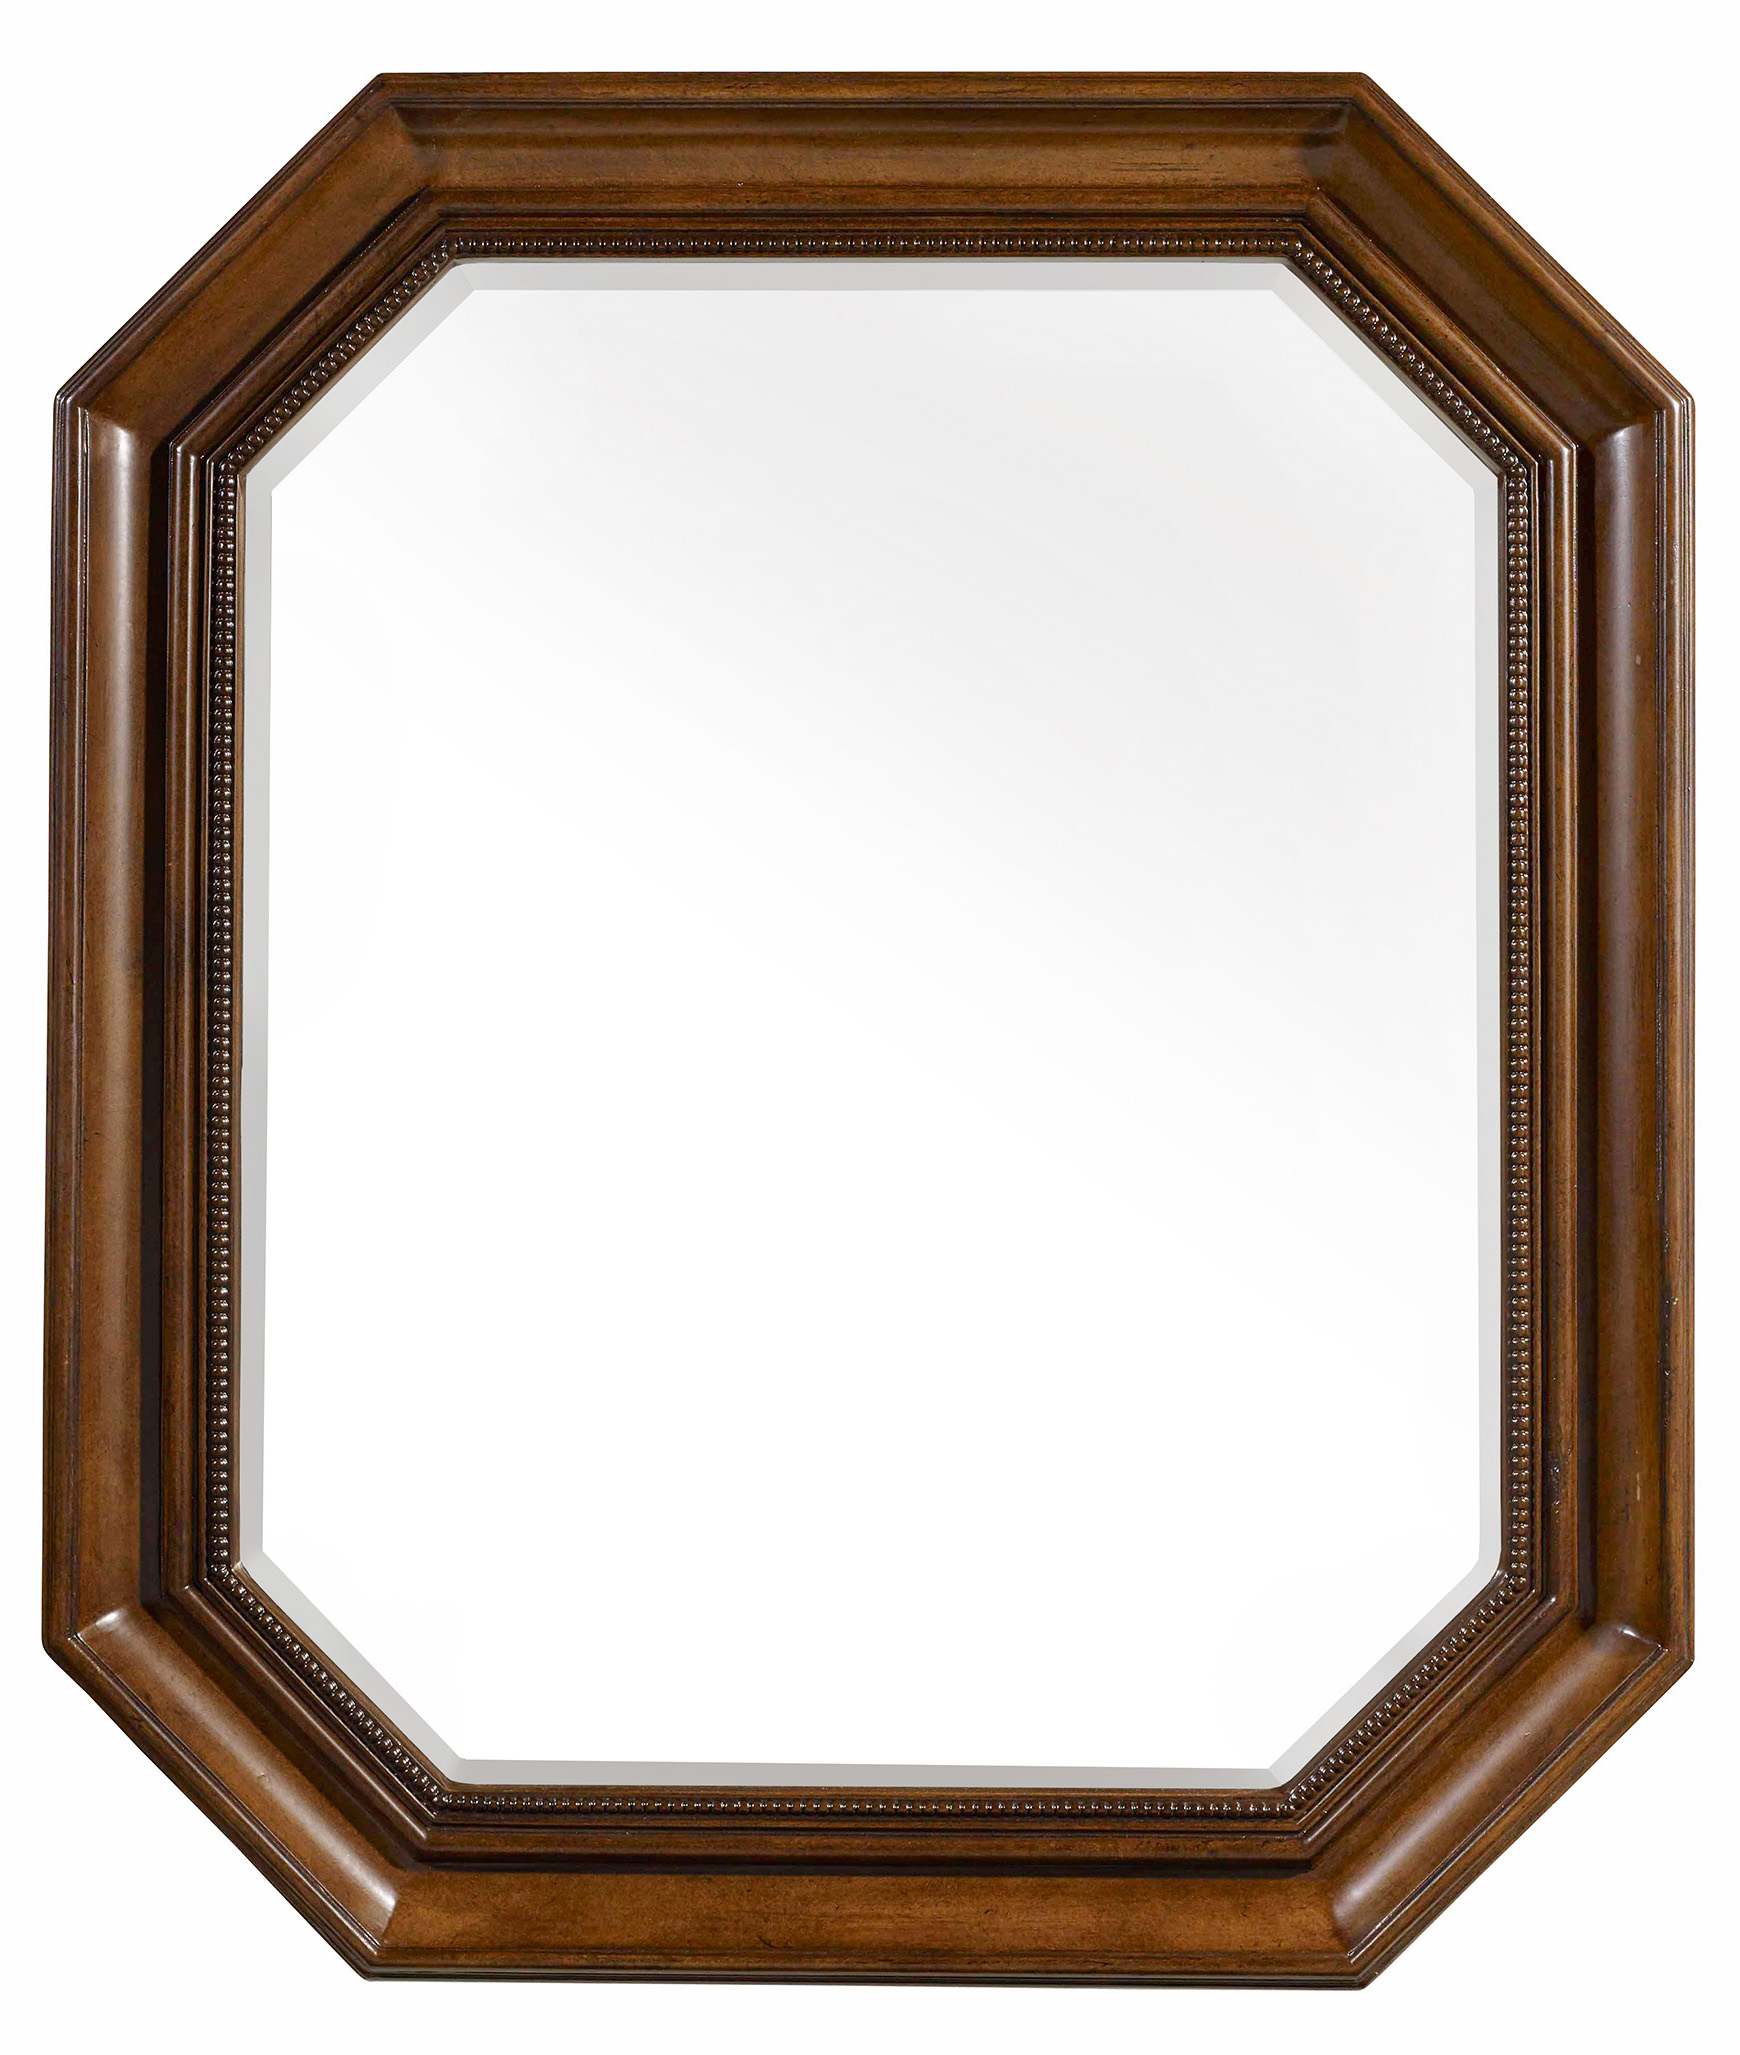 Hooker Furniture Archivist Portrait Mirror - Item Number: 5447-90008